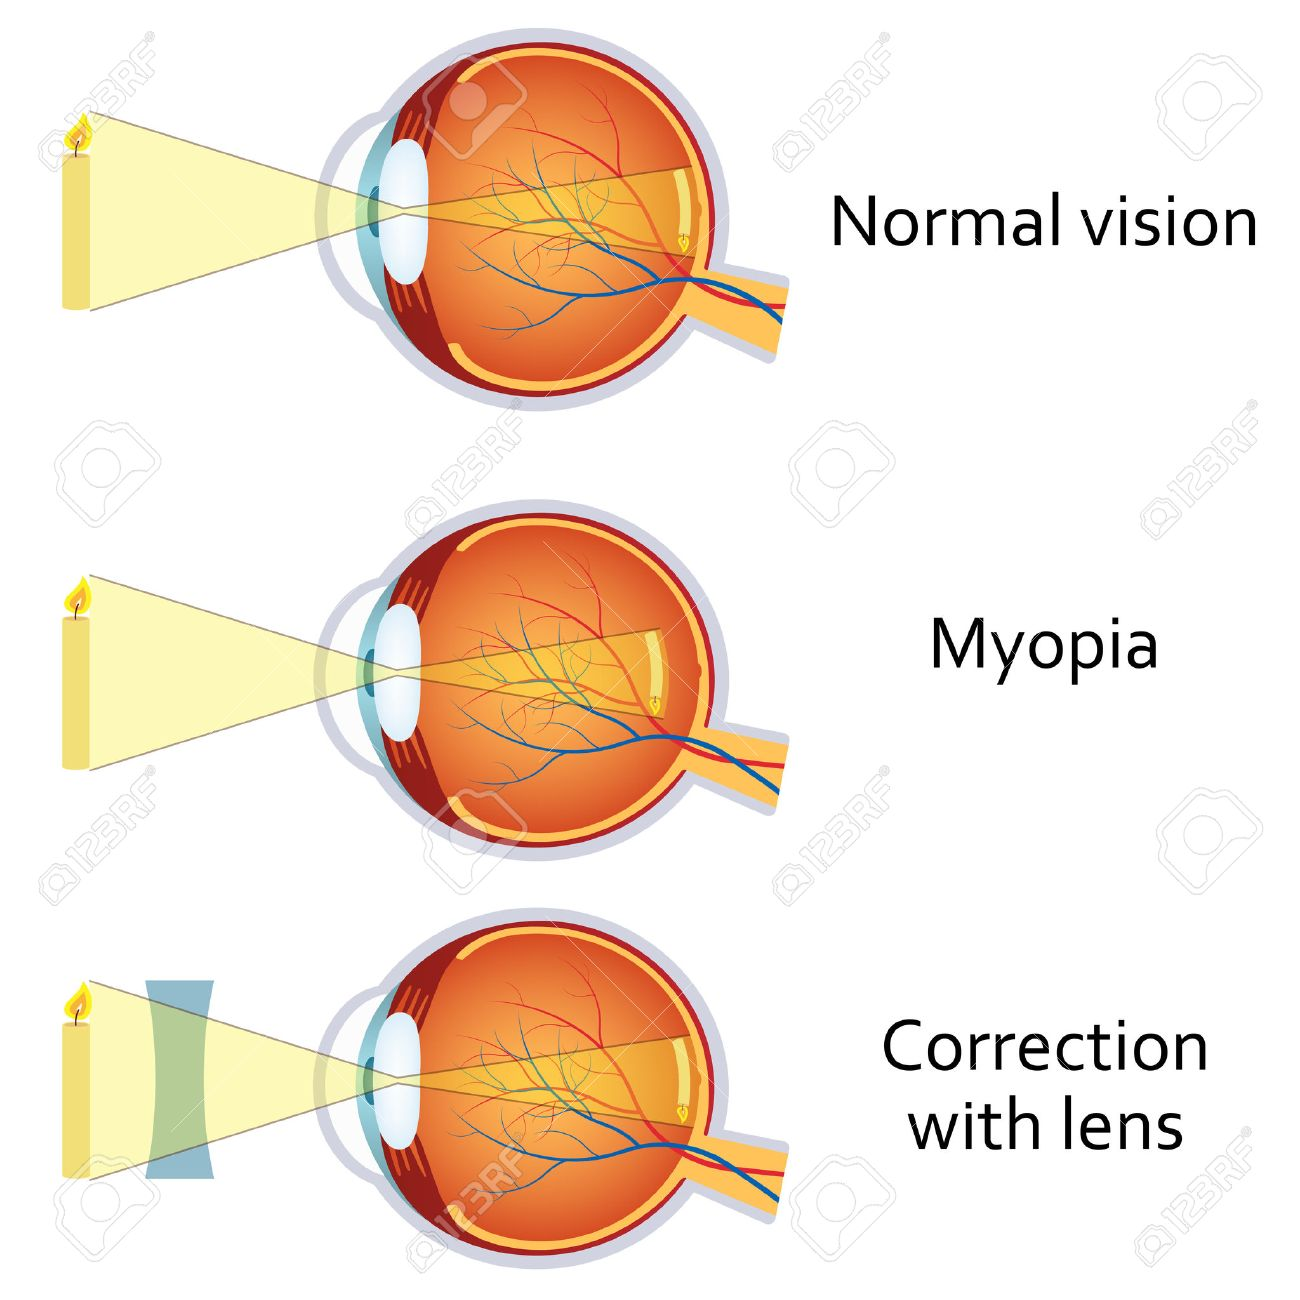 hight resolution of myopia and myopia corrected by a minus lens eye vision disorder stock vector